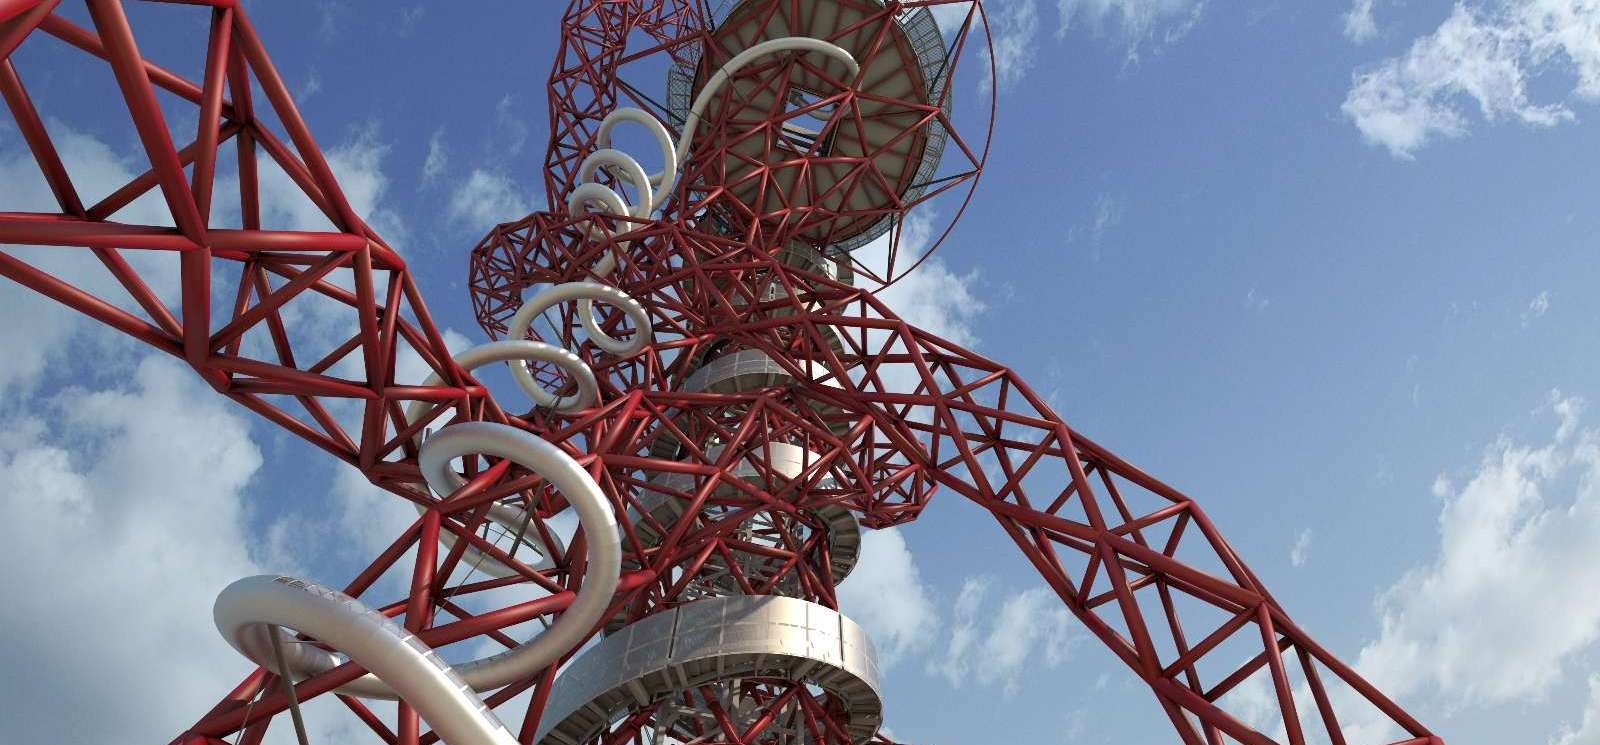 The Slide at The ArcelorMittal Orbit For 2 Adults-1